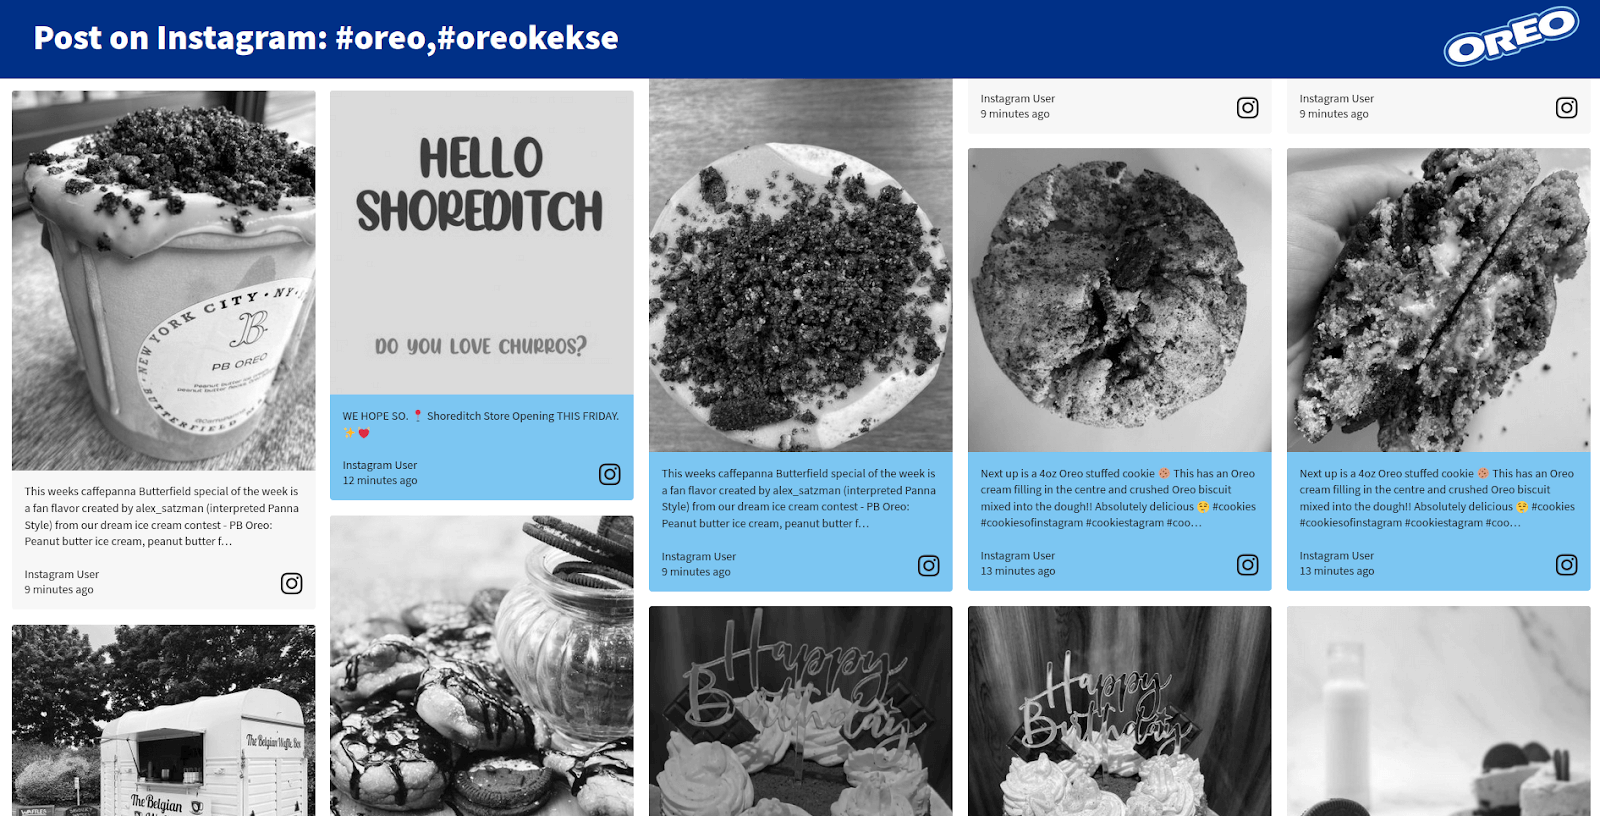 Screenshot of the Oreo branded social media feed with images in a range of grey shades from white to black.